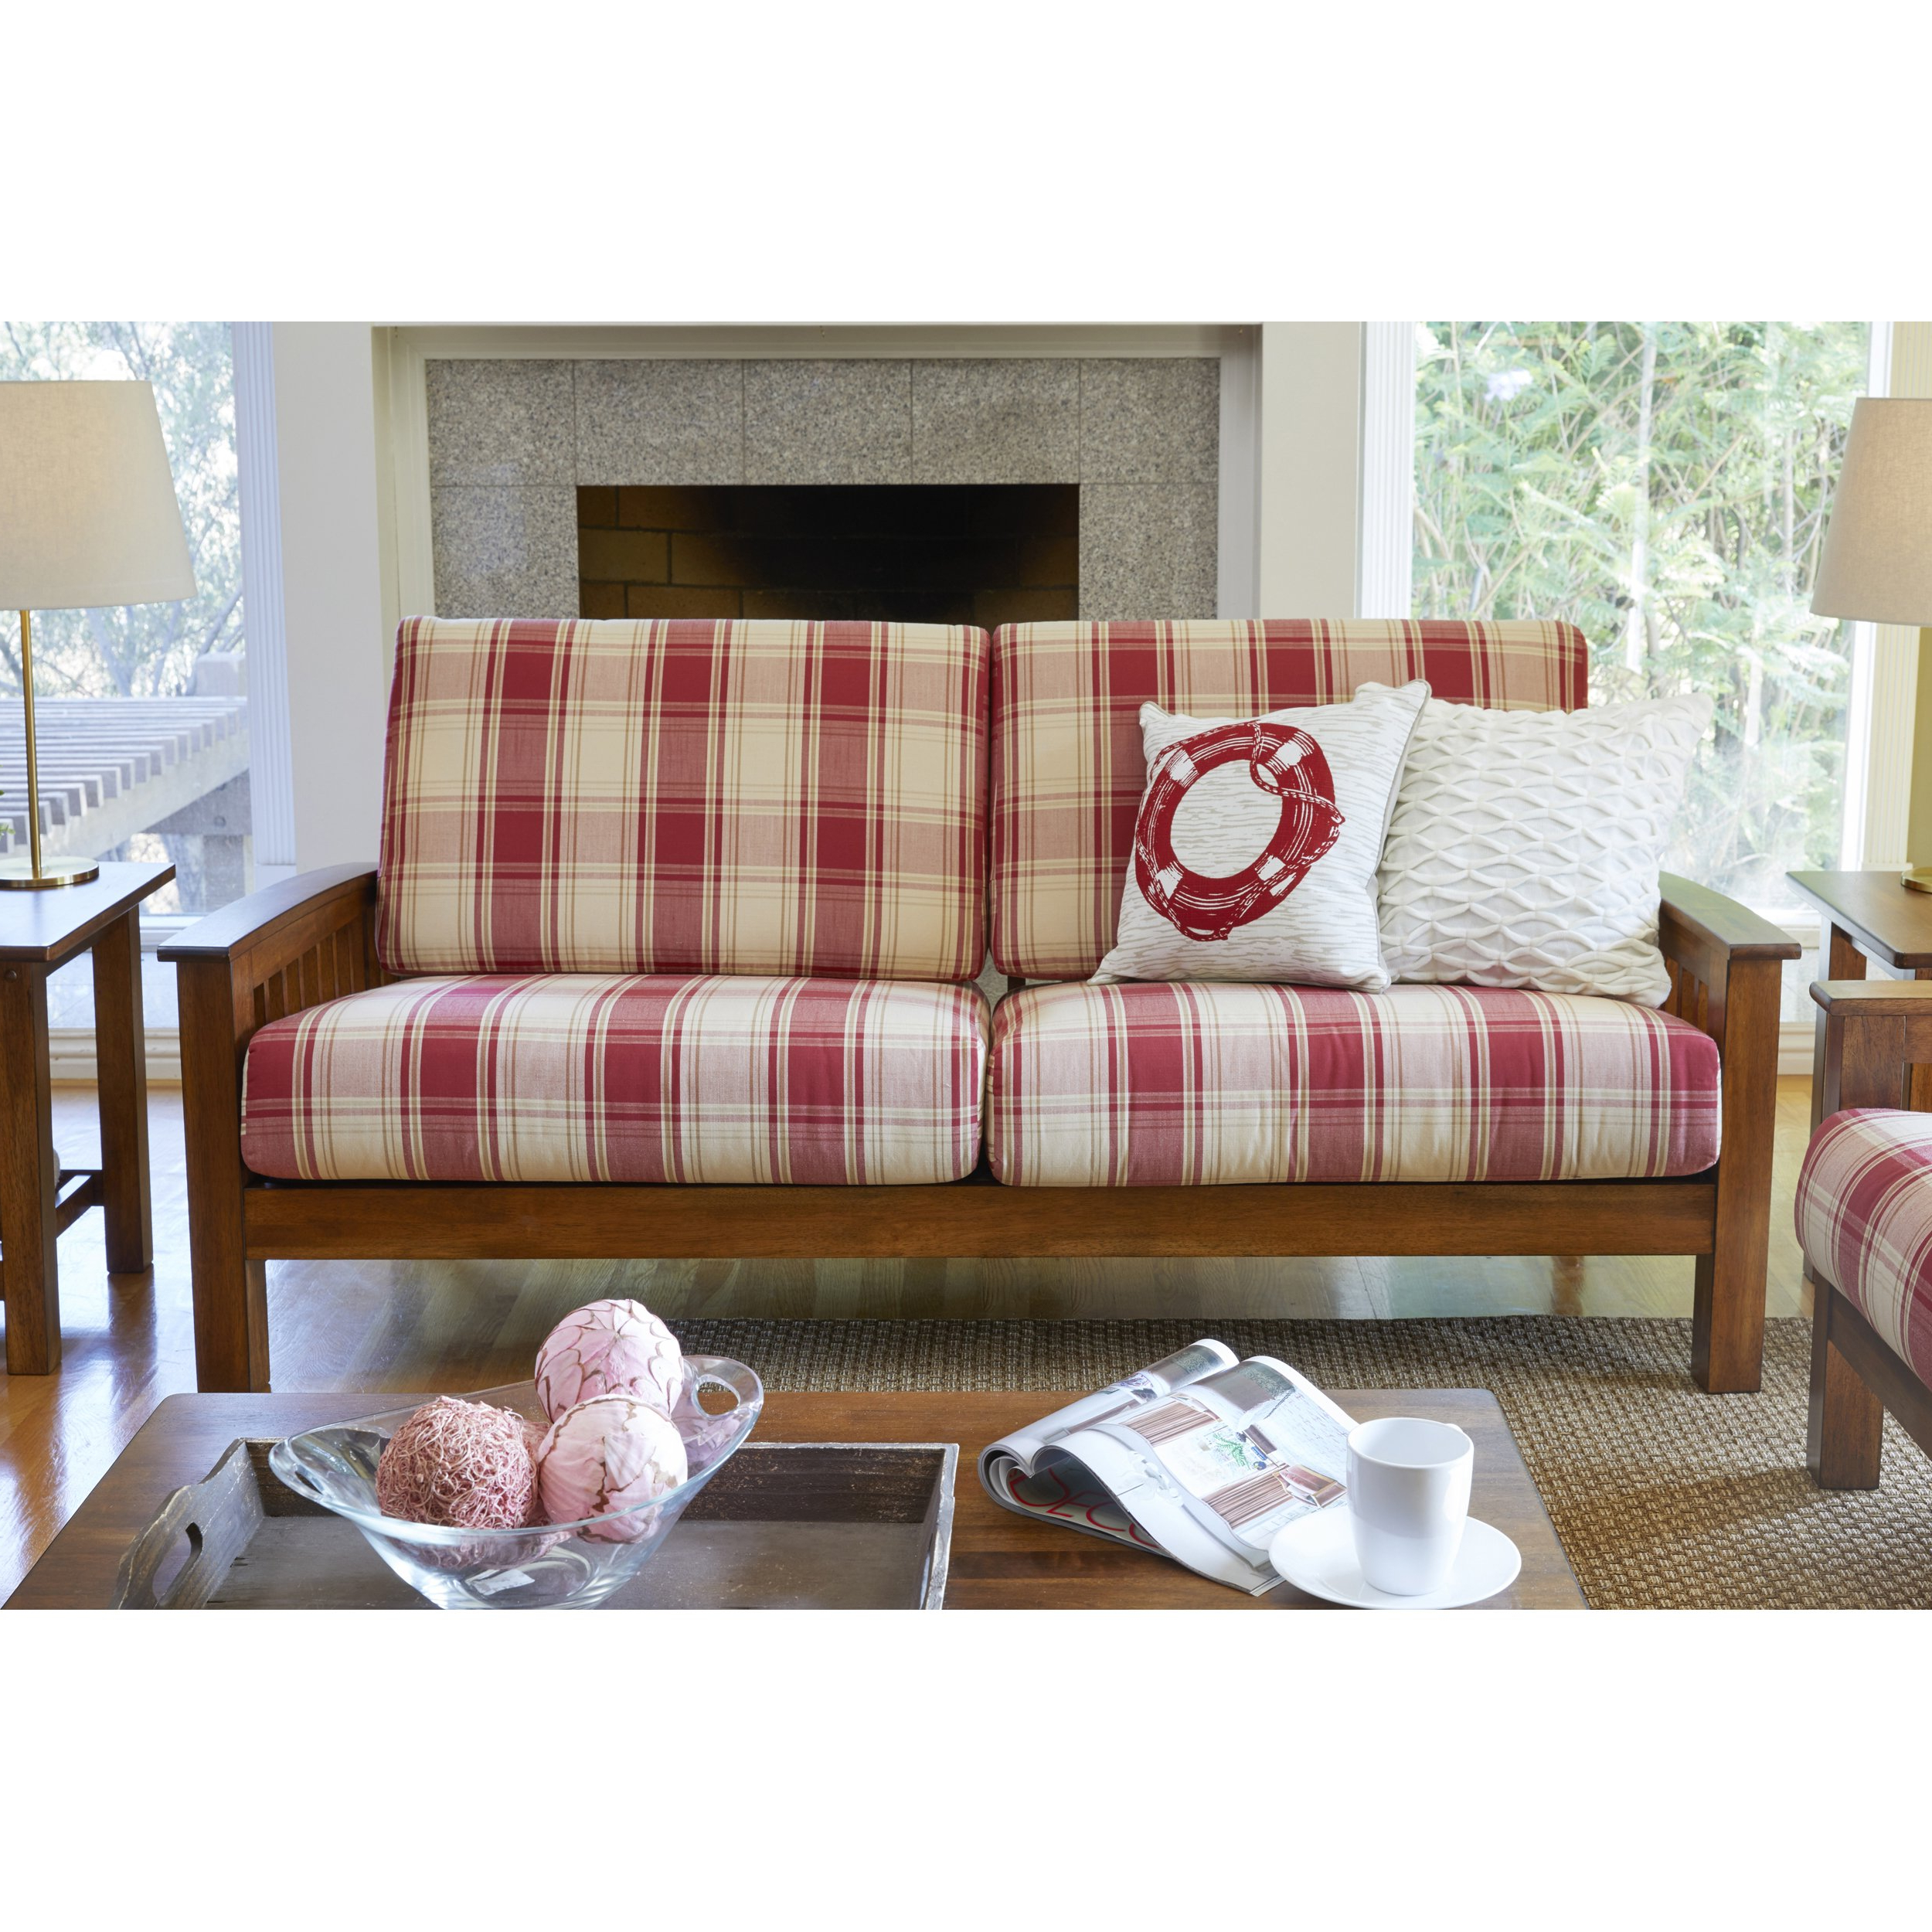 Plaids sofa 3id6 Shop the Gray Barn Mercy Red Plaid Mission Style sofa with Exposed